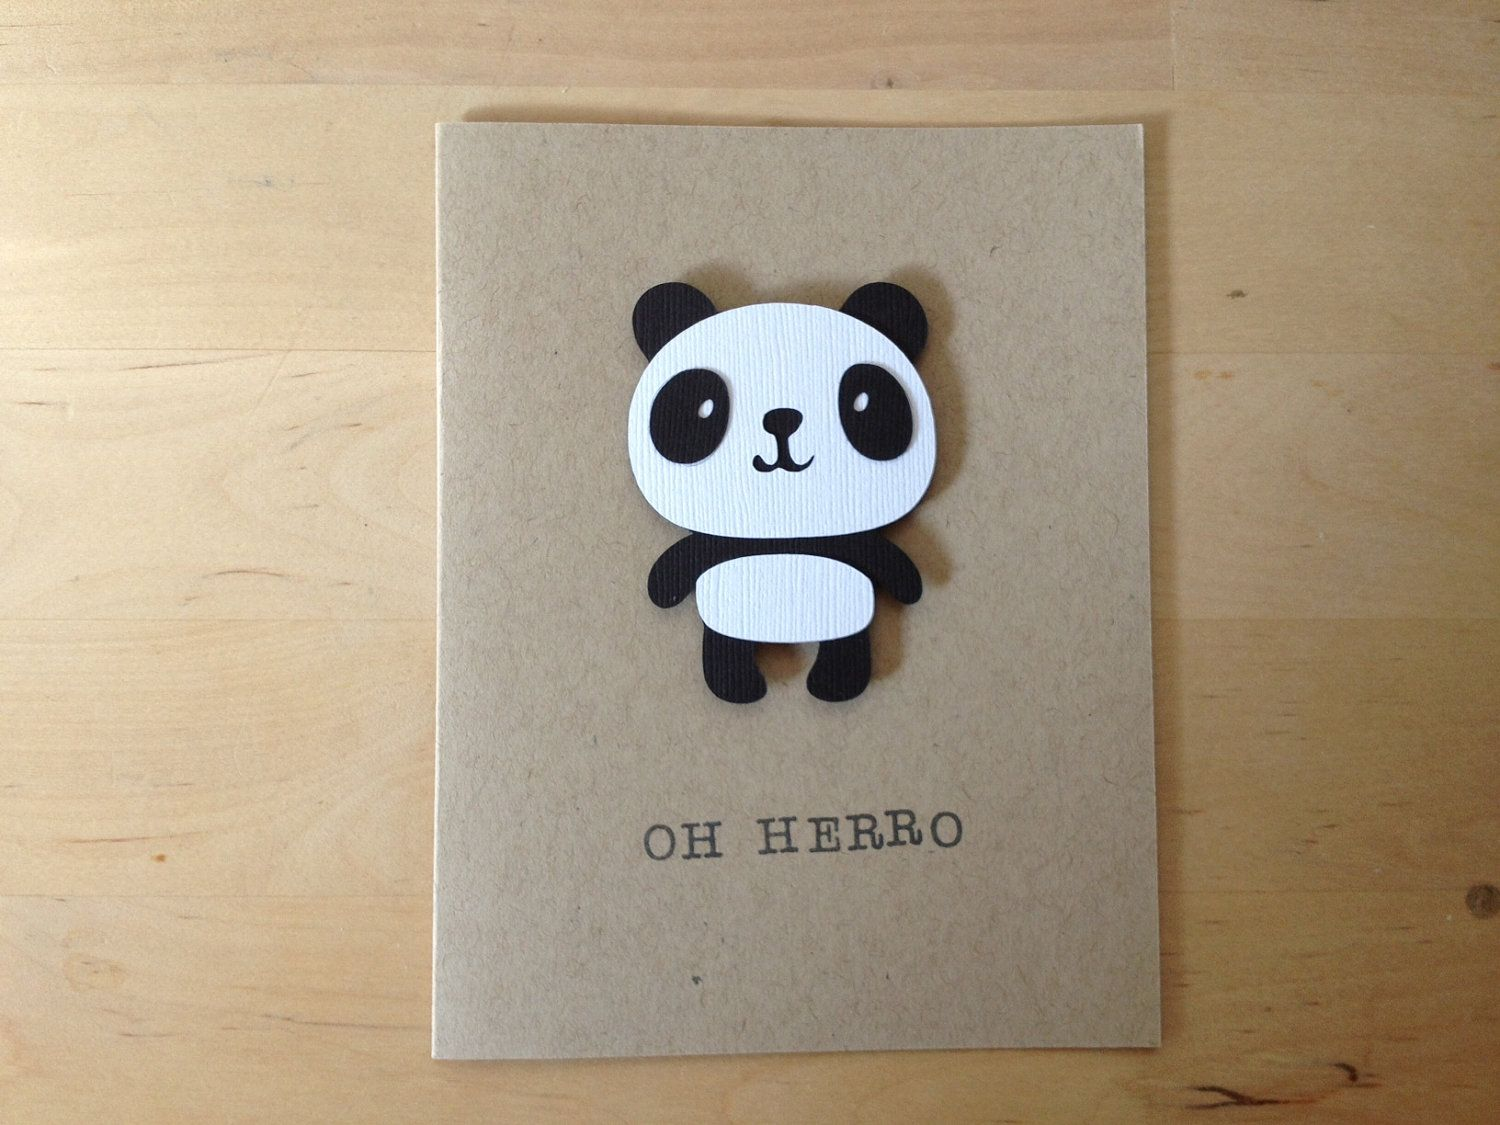 Oh Herro Panda Card Craft Ideas Pinterest Panda Cards And Craft